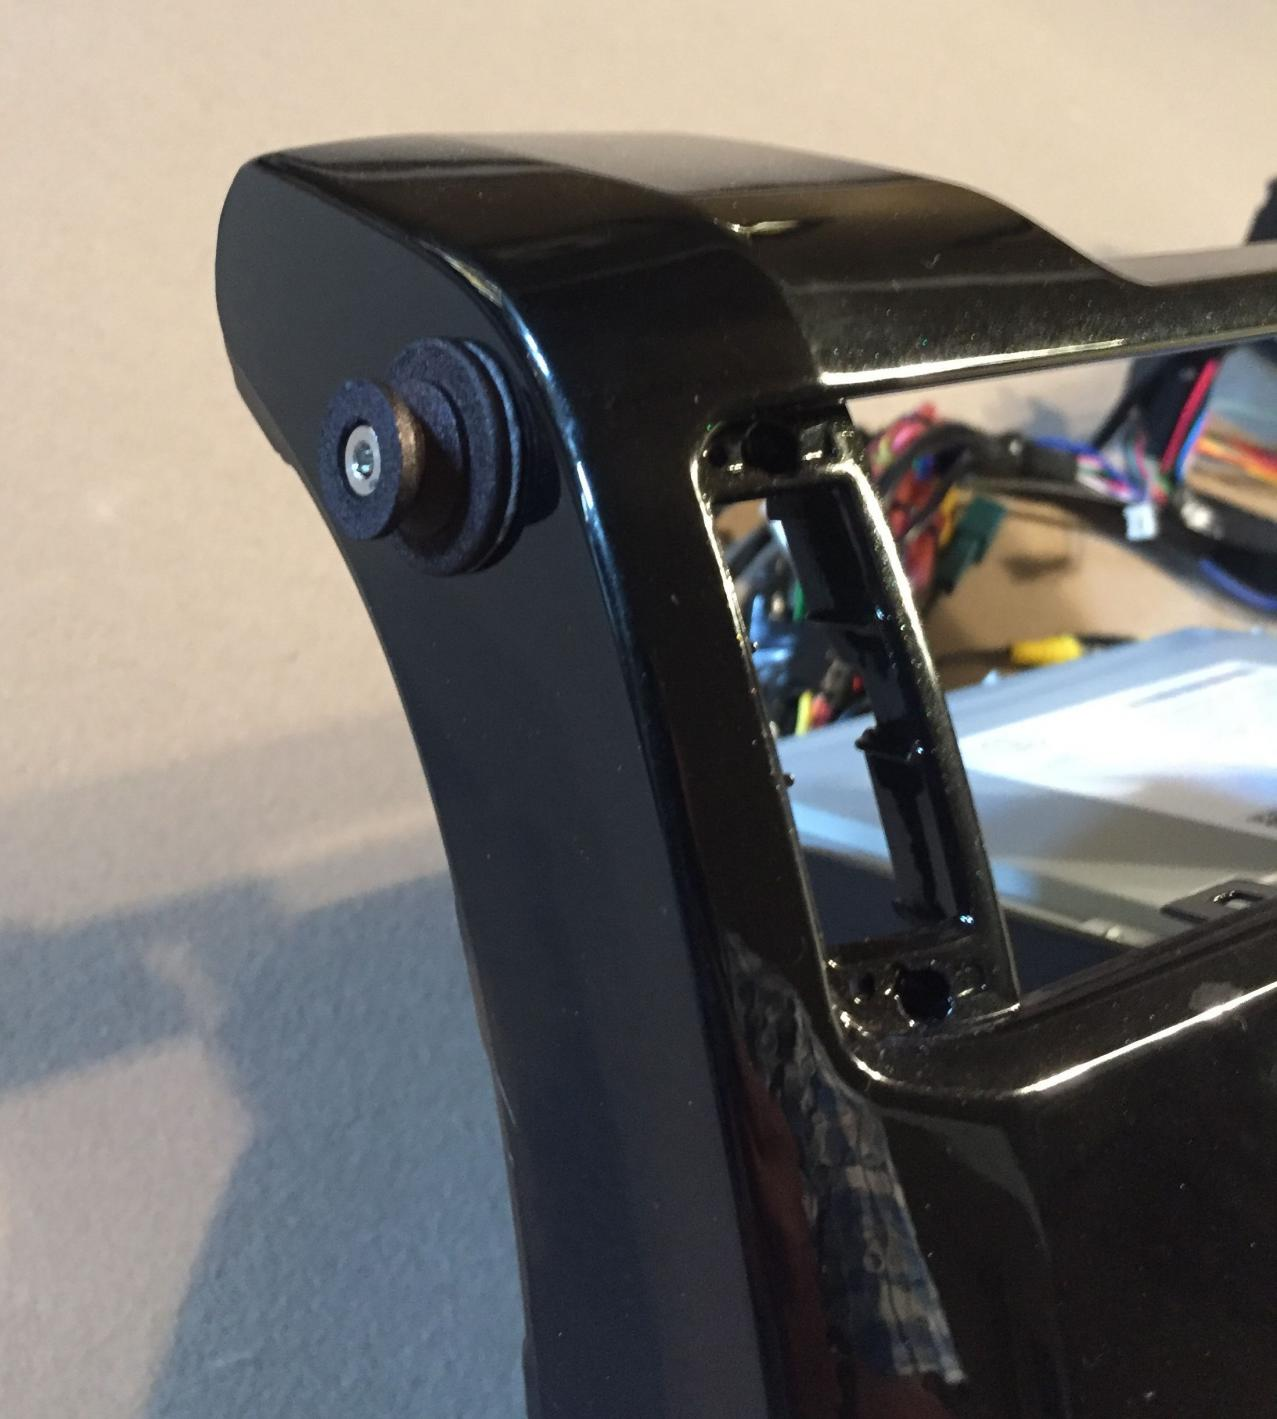 2019 Current phone mount solutions?-6-jpg